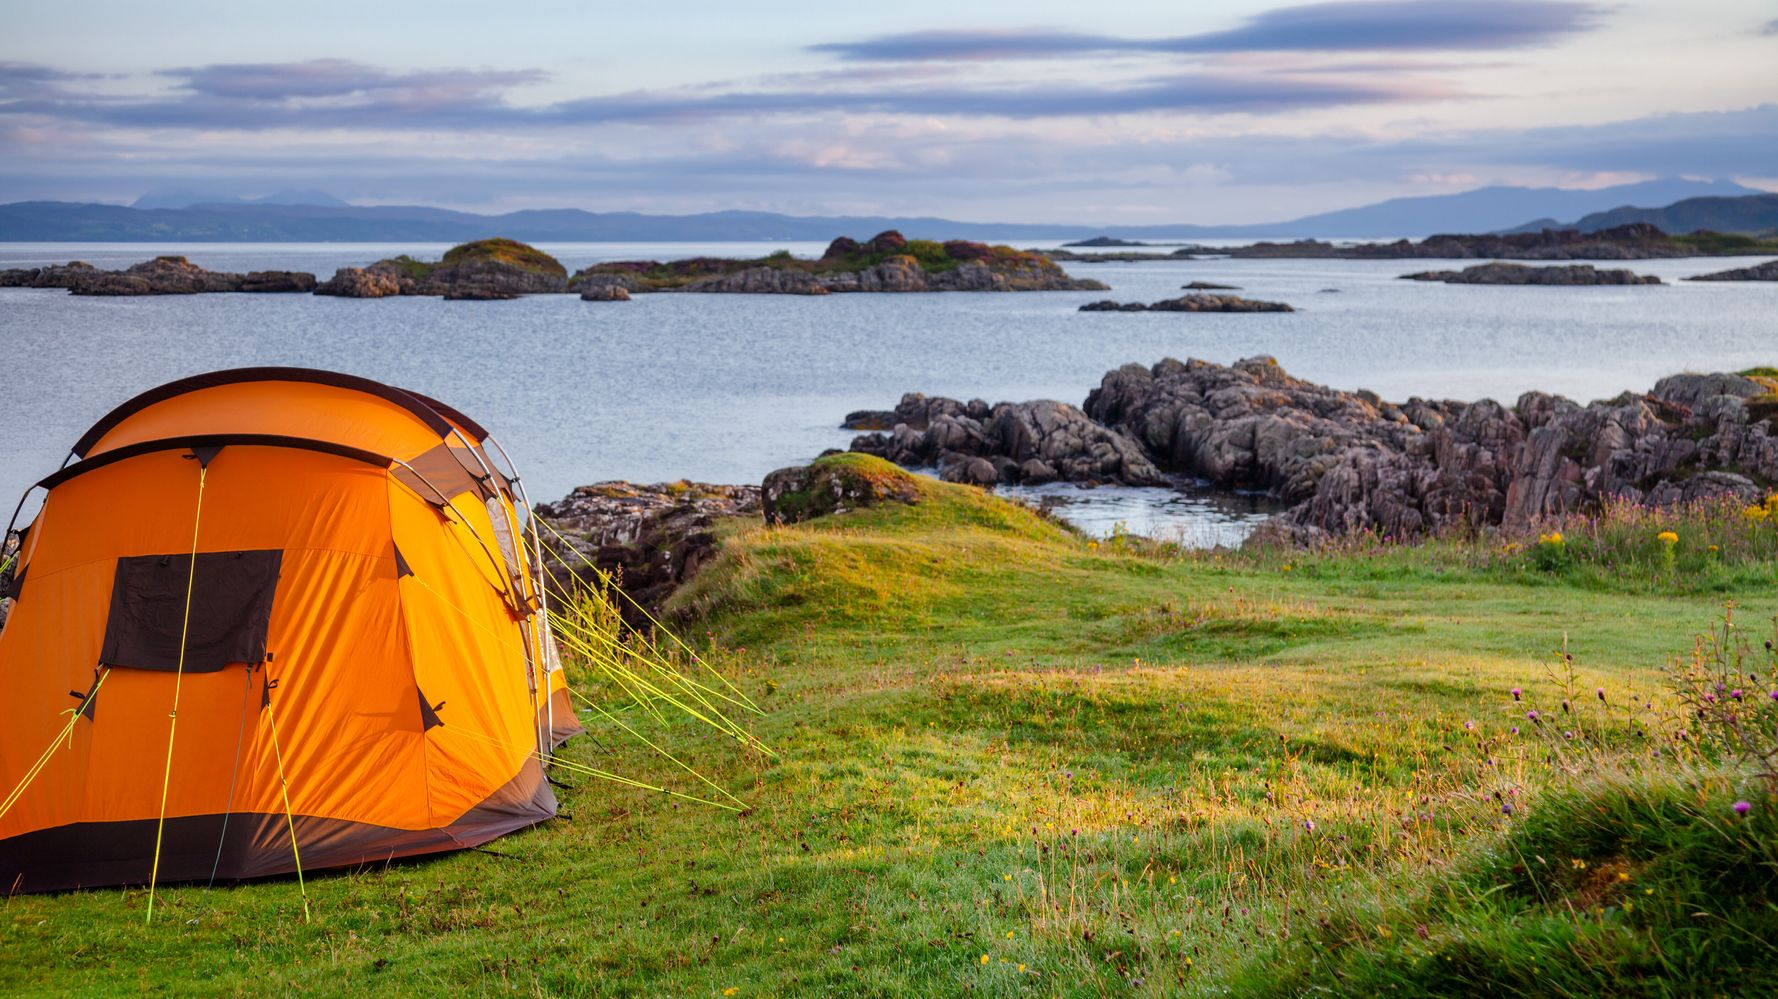 Burying Poos And Building Water: The Dos And Don'ts Of Wild Camping